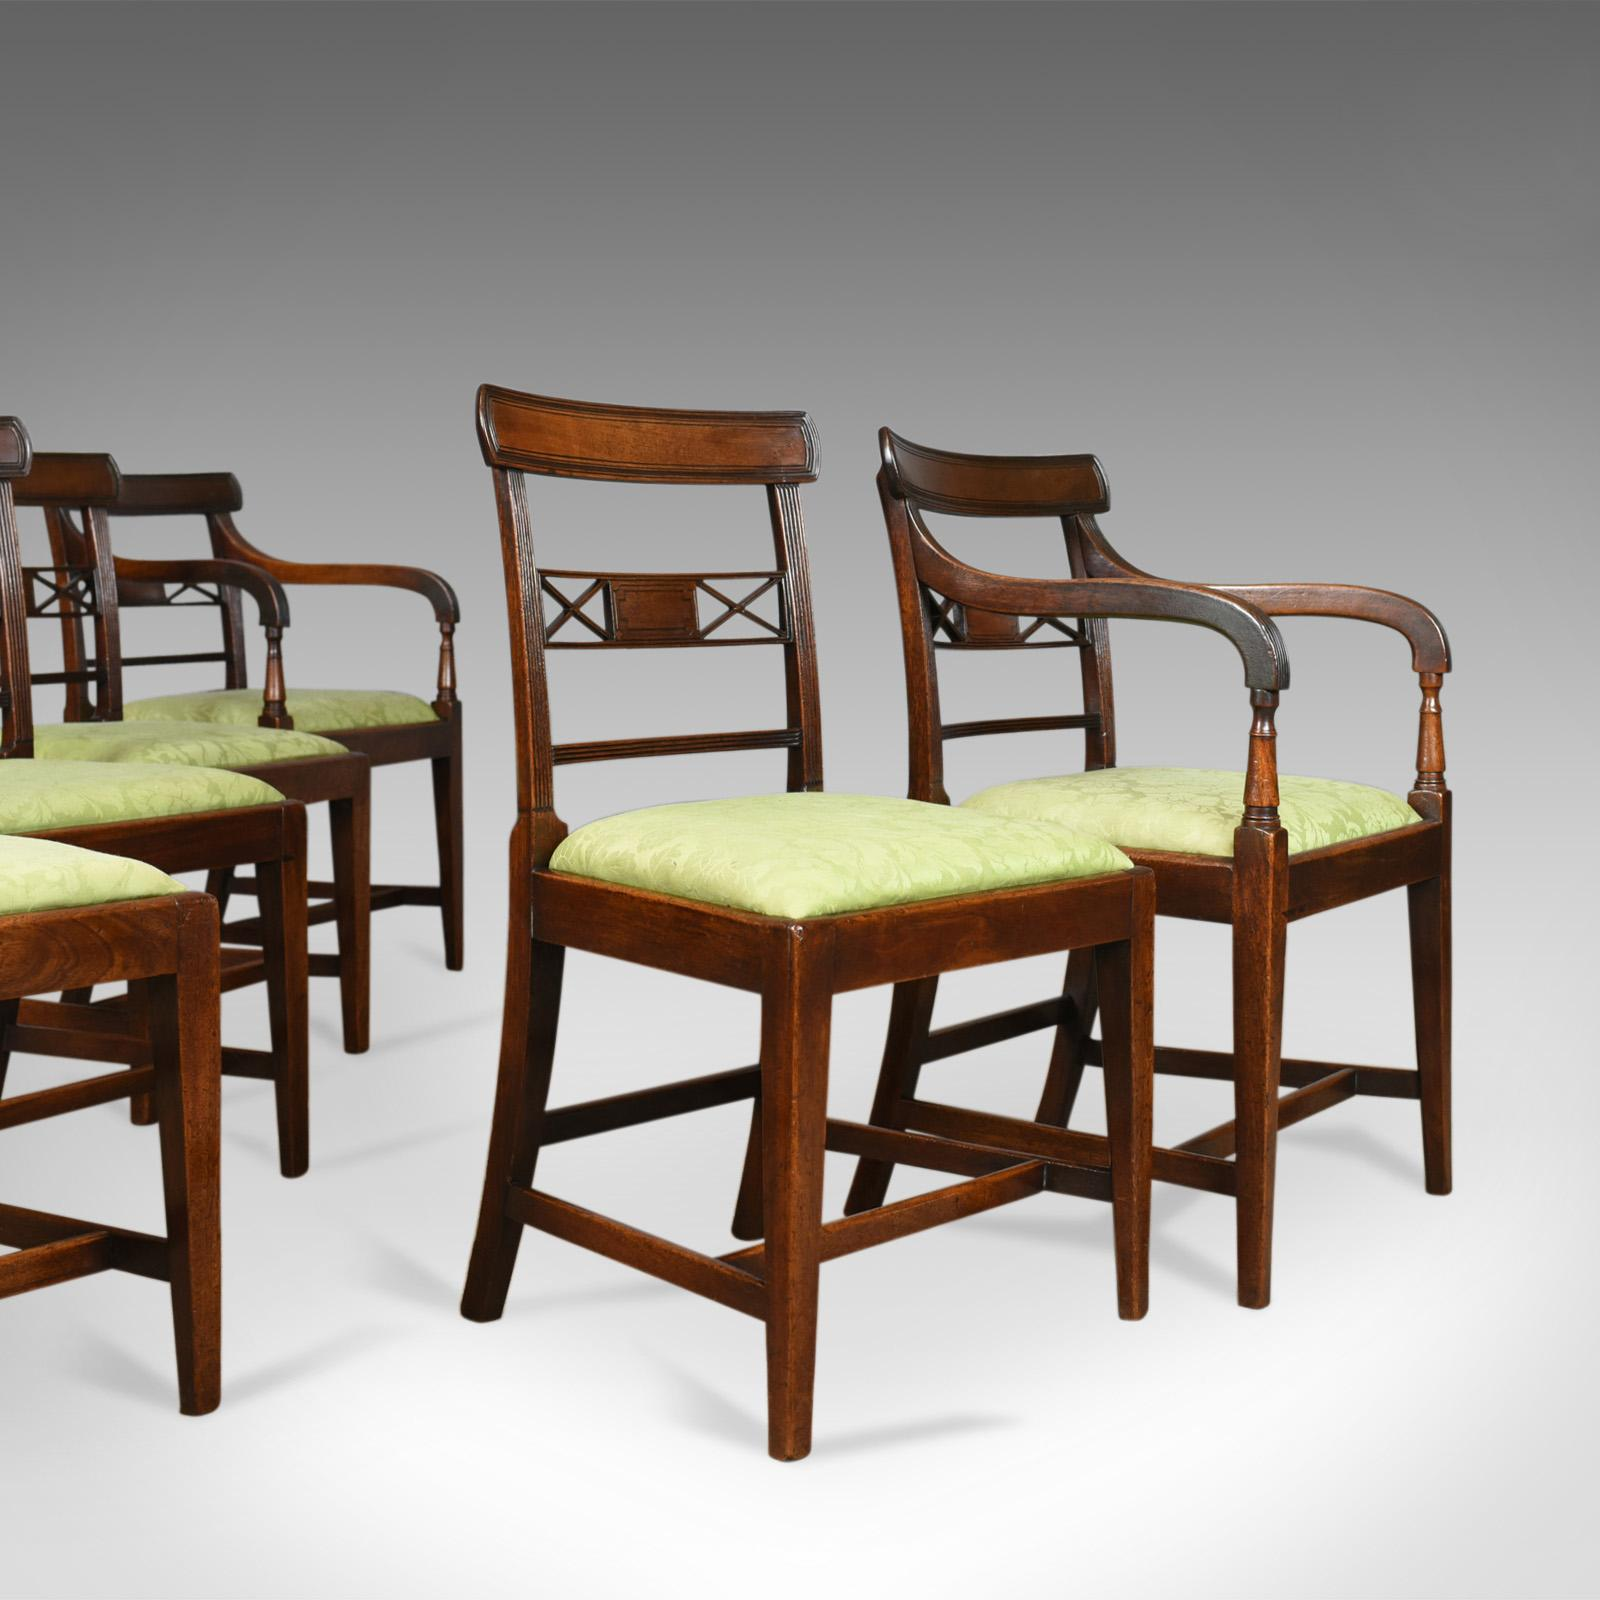 Dating antique dining chairs